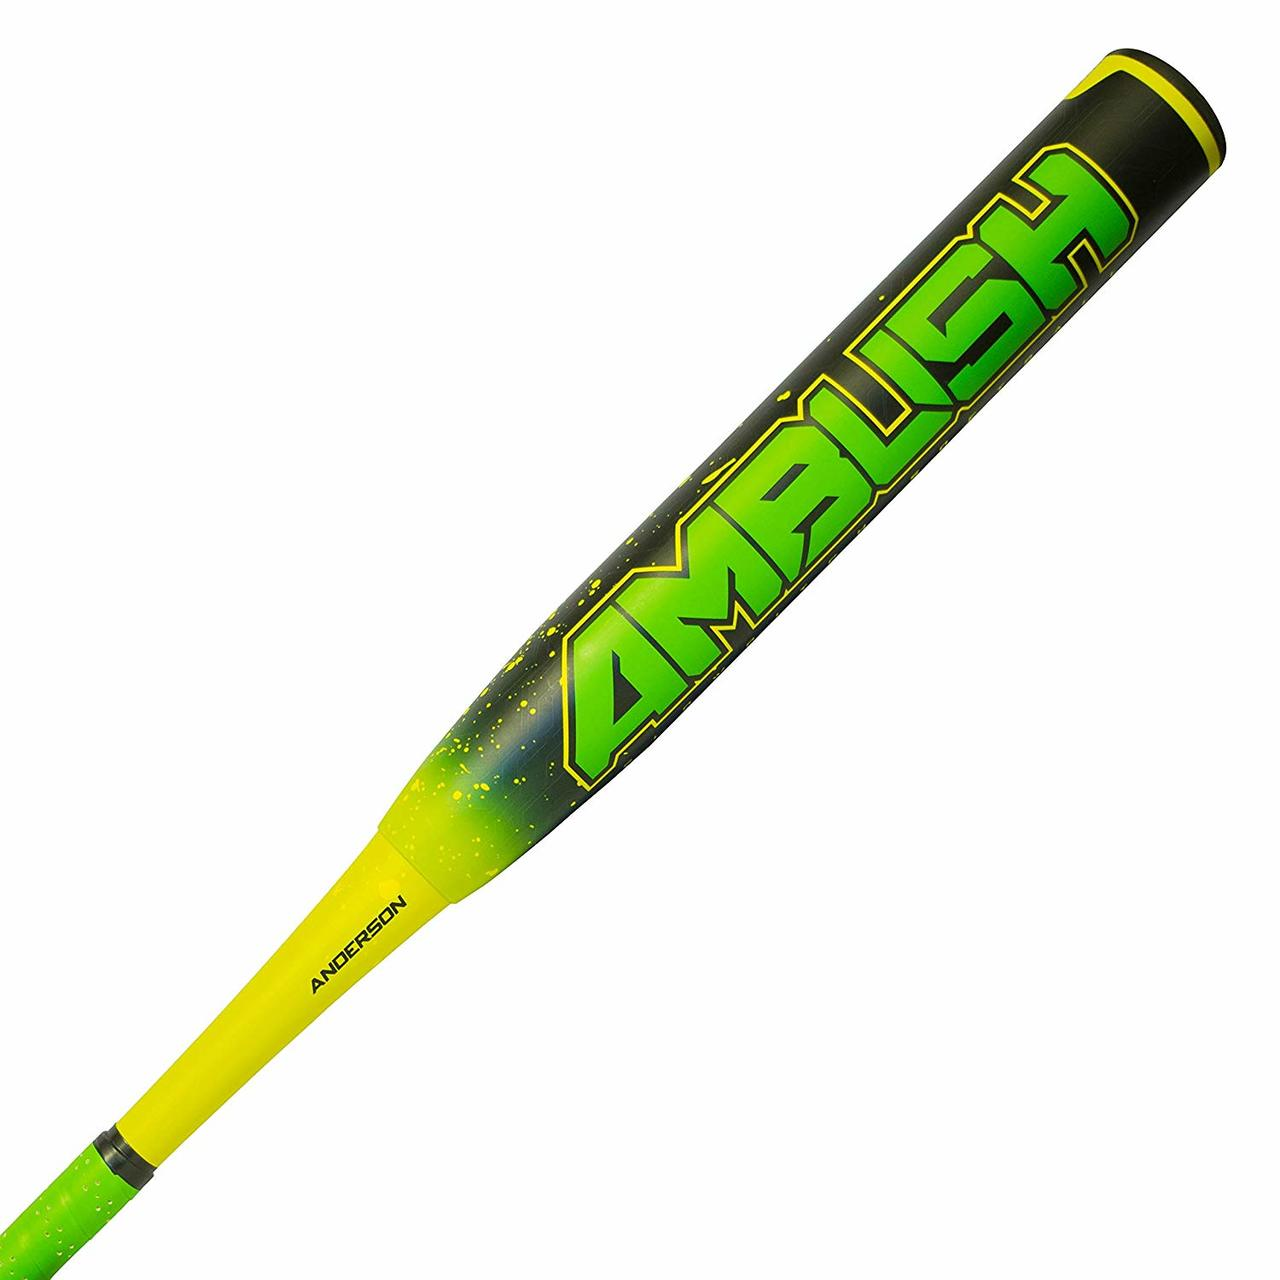 anderson-2018-ambush-composite-slowpitch-softball-bat-34-in-27-oz 011046-3427  874147008676 wo-piece Multi layered Composite for performance and durability ½ Ounce end